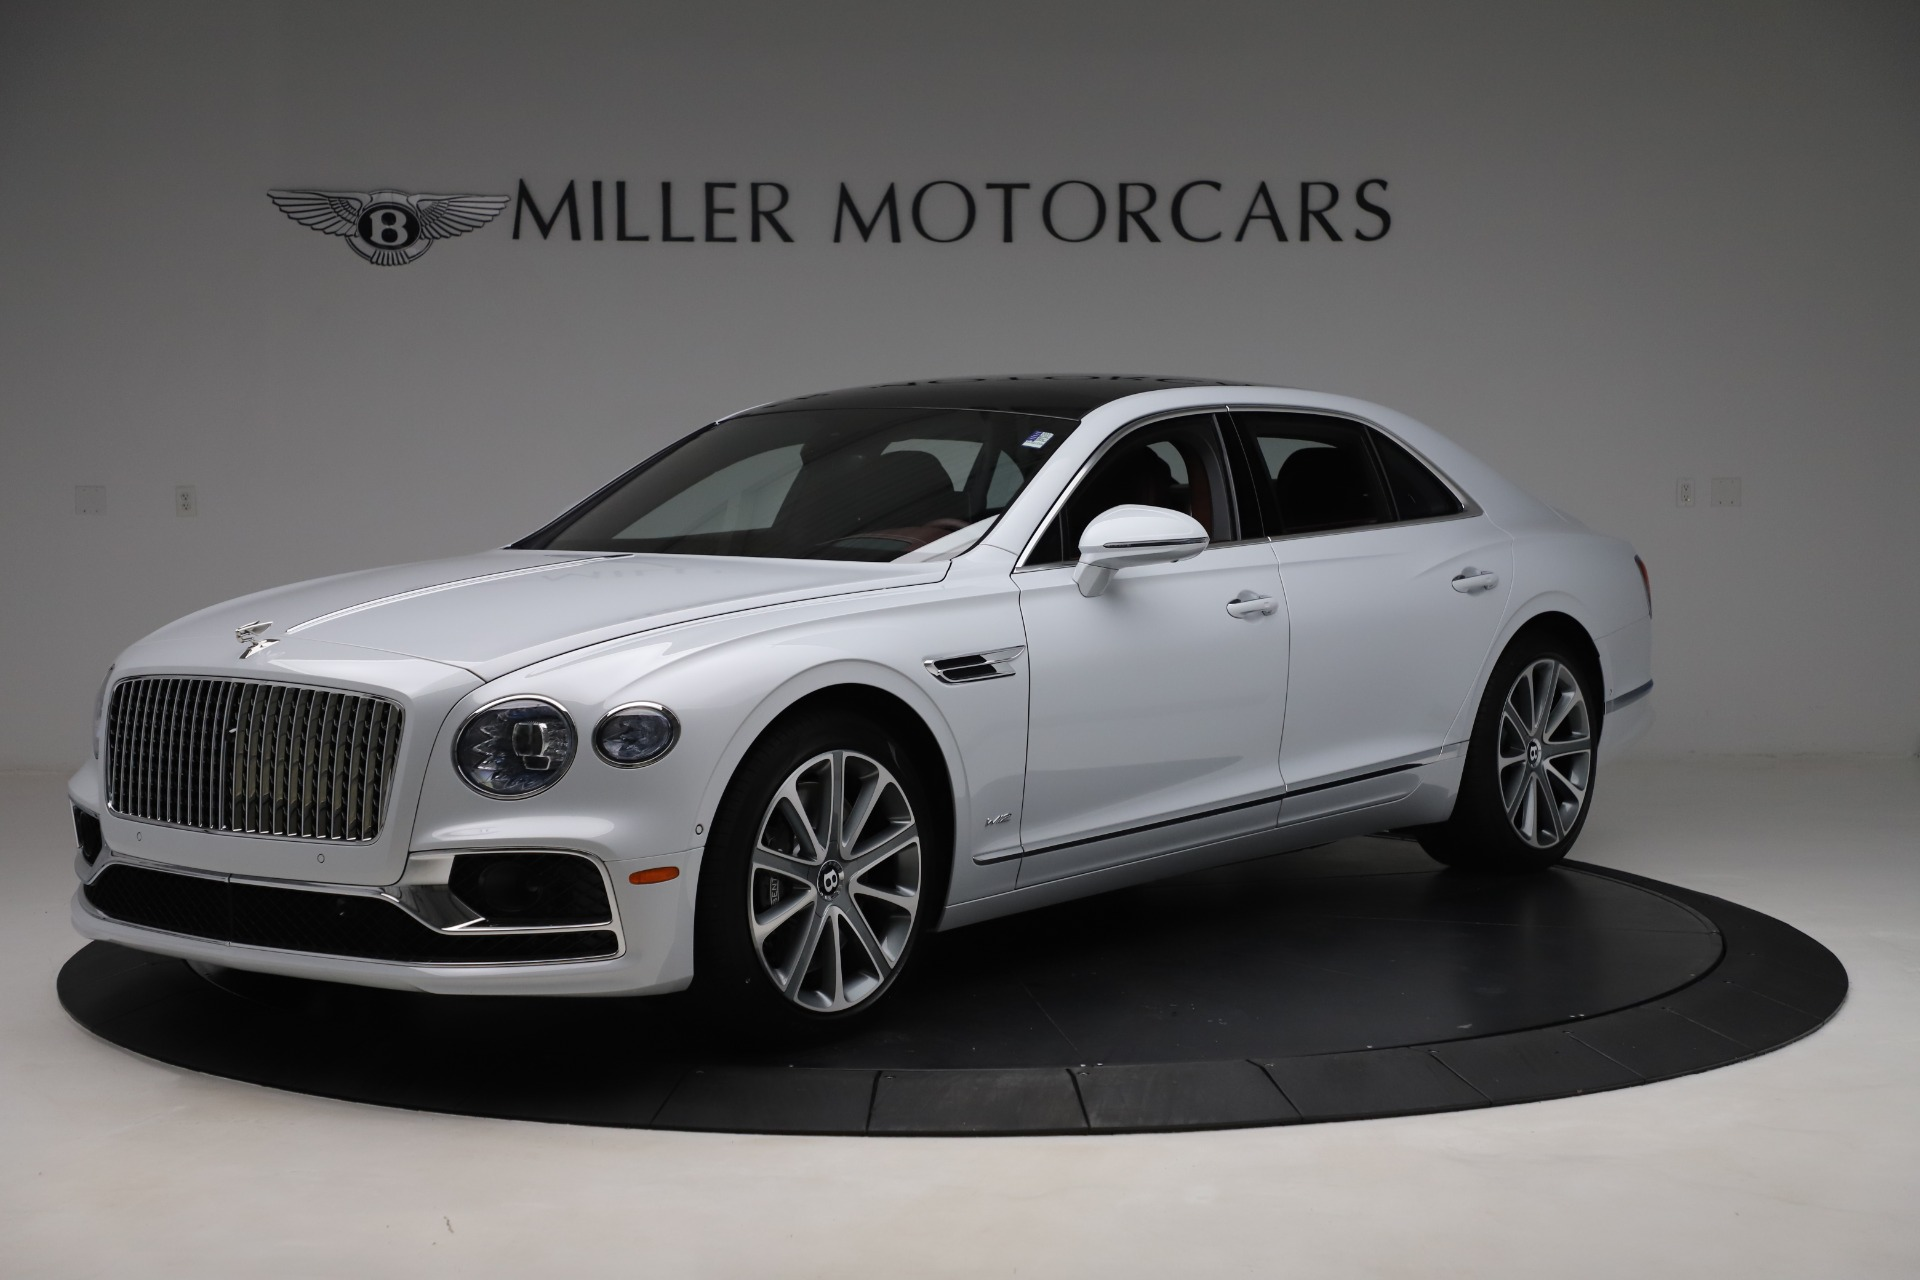 New 2021 Bentley Flying Spur W12 For Sale In Westport, CT 3230_p2